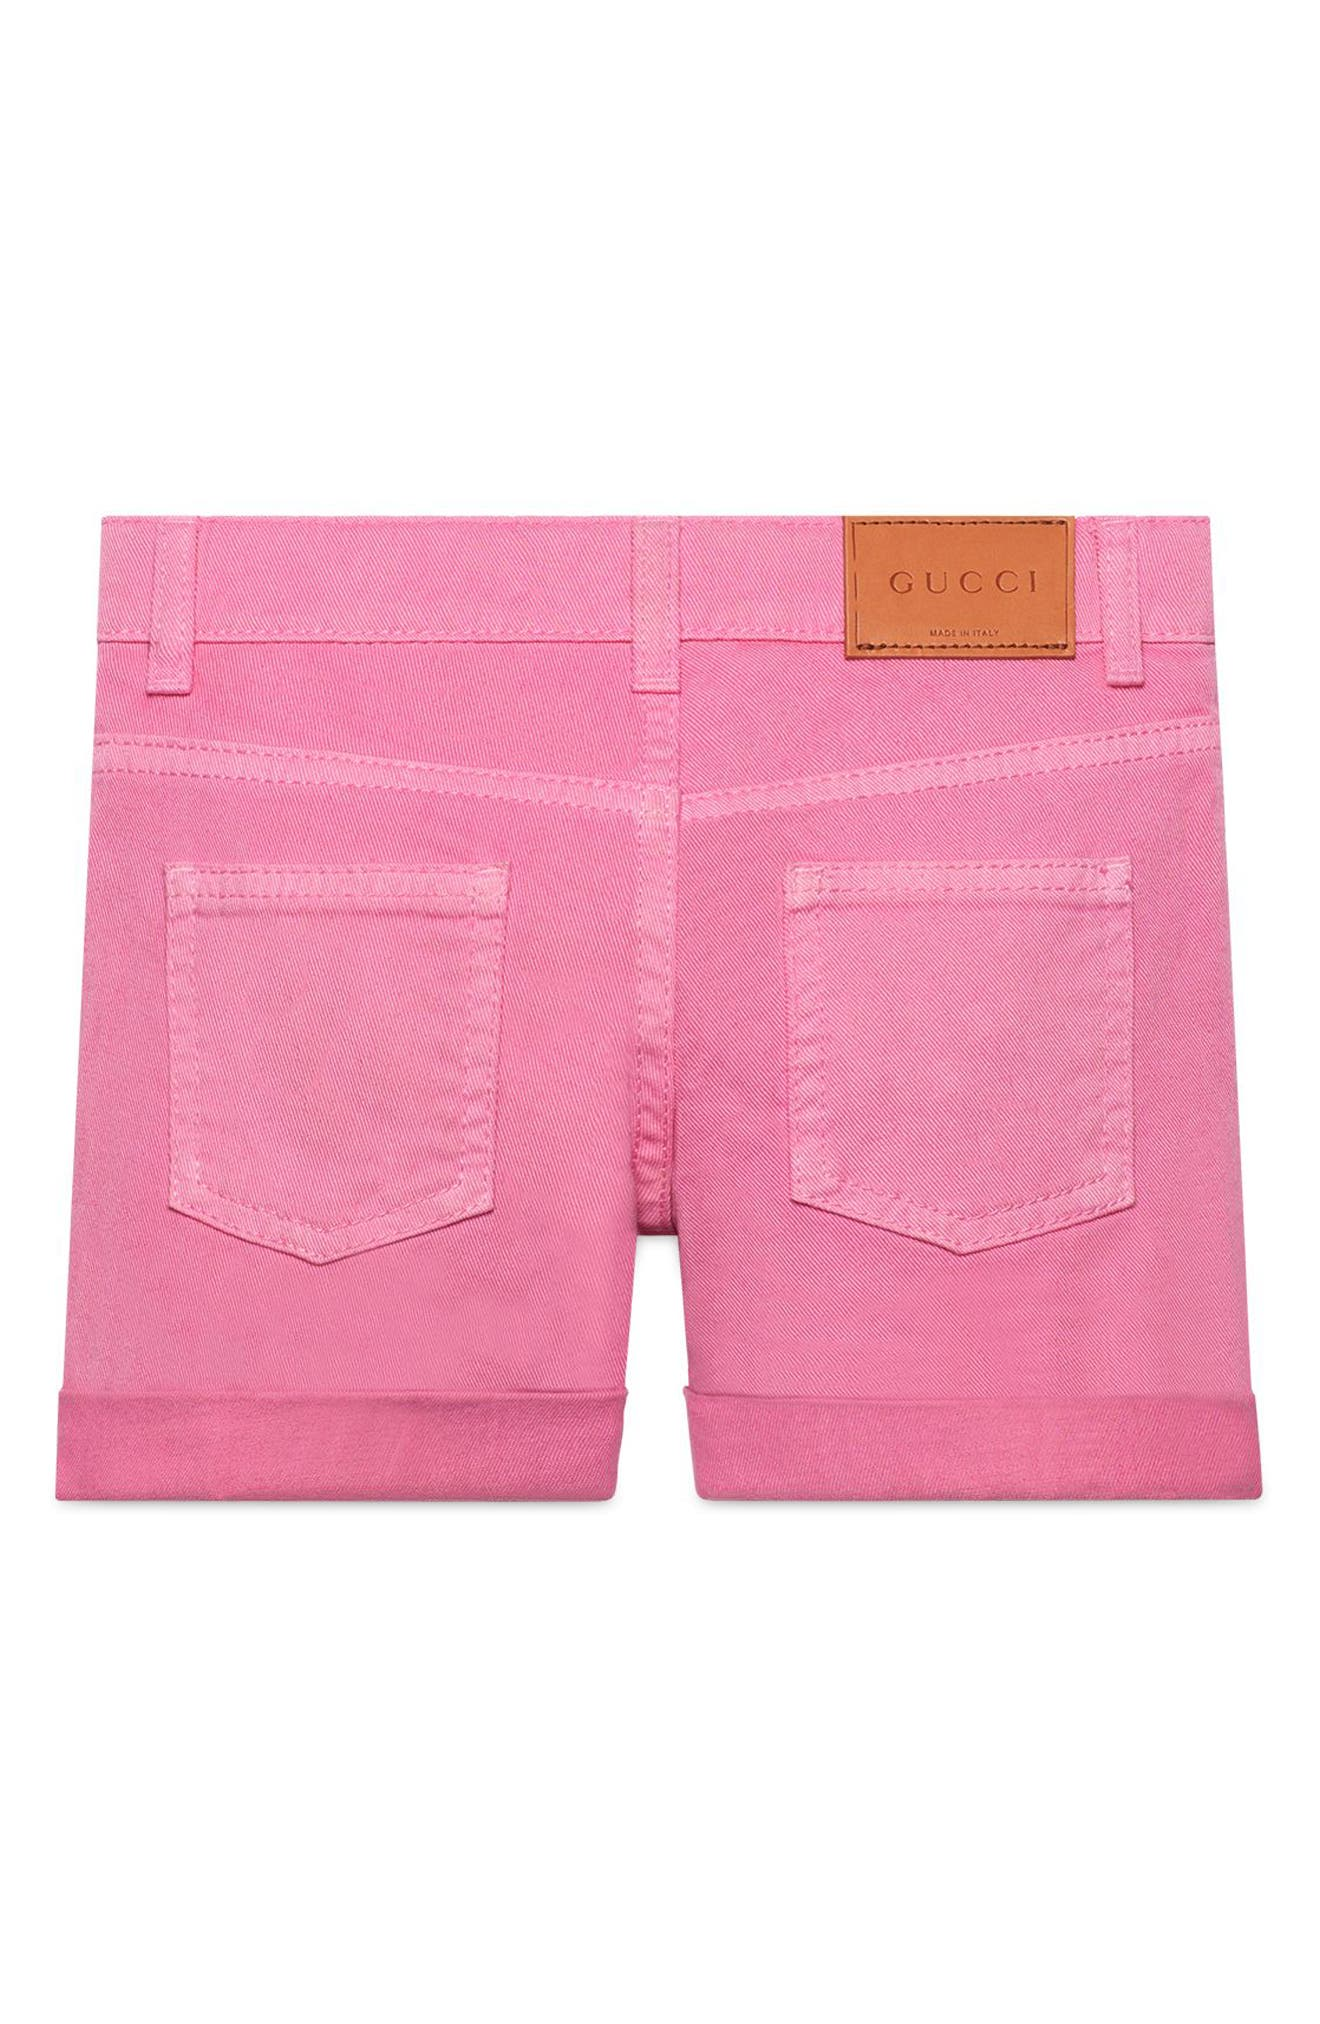 Pink Denim Cuffed Shorts,                             Alternate thumbnail 2, color,                             Copper/ Rose